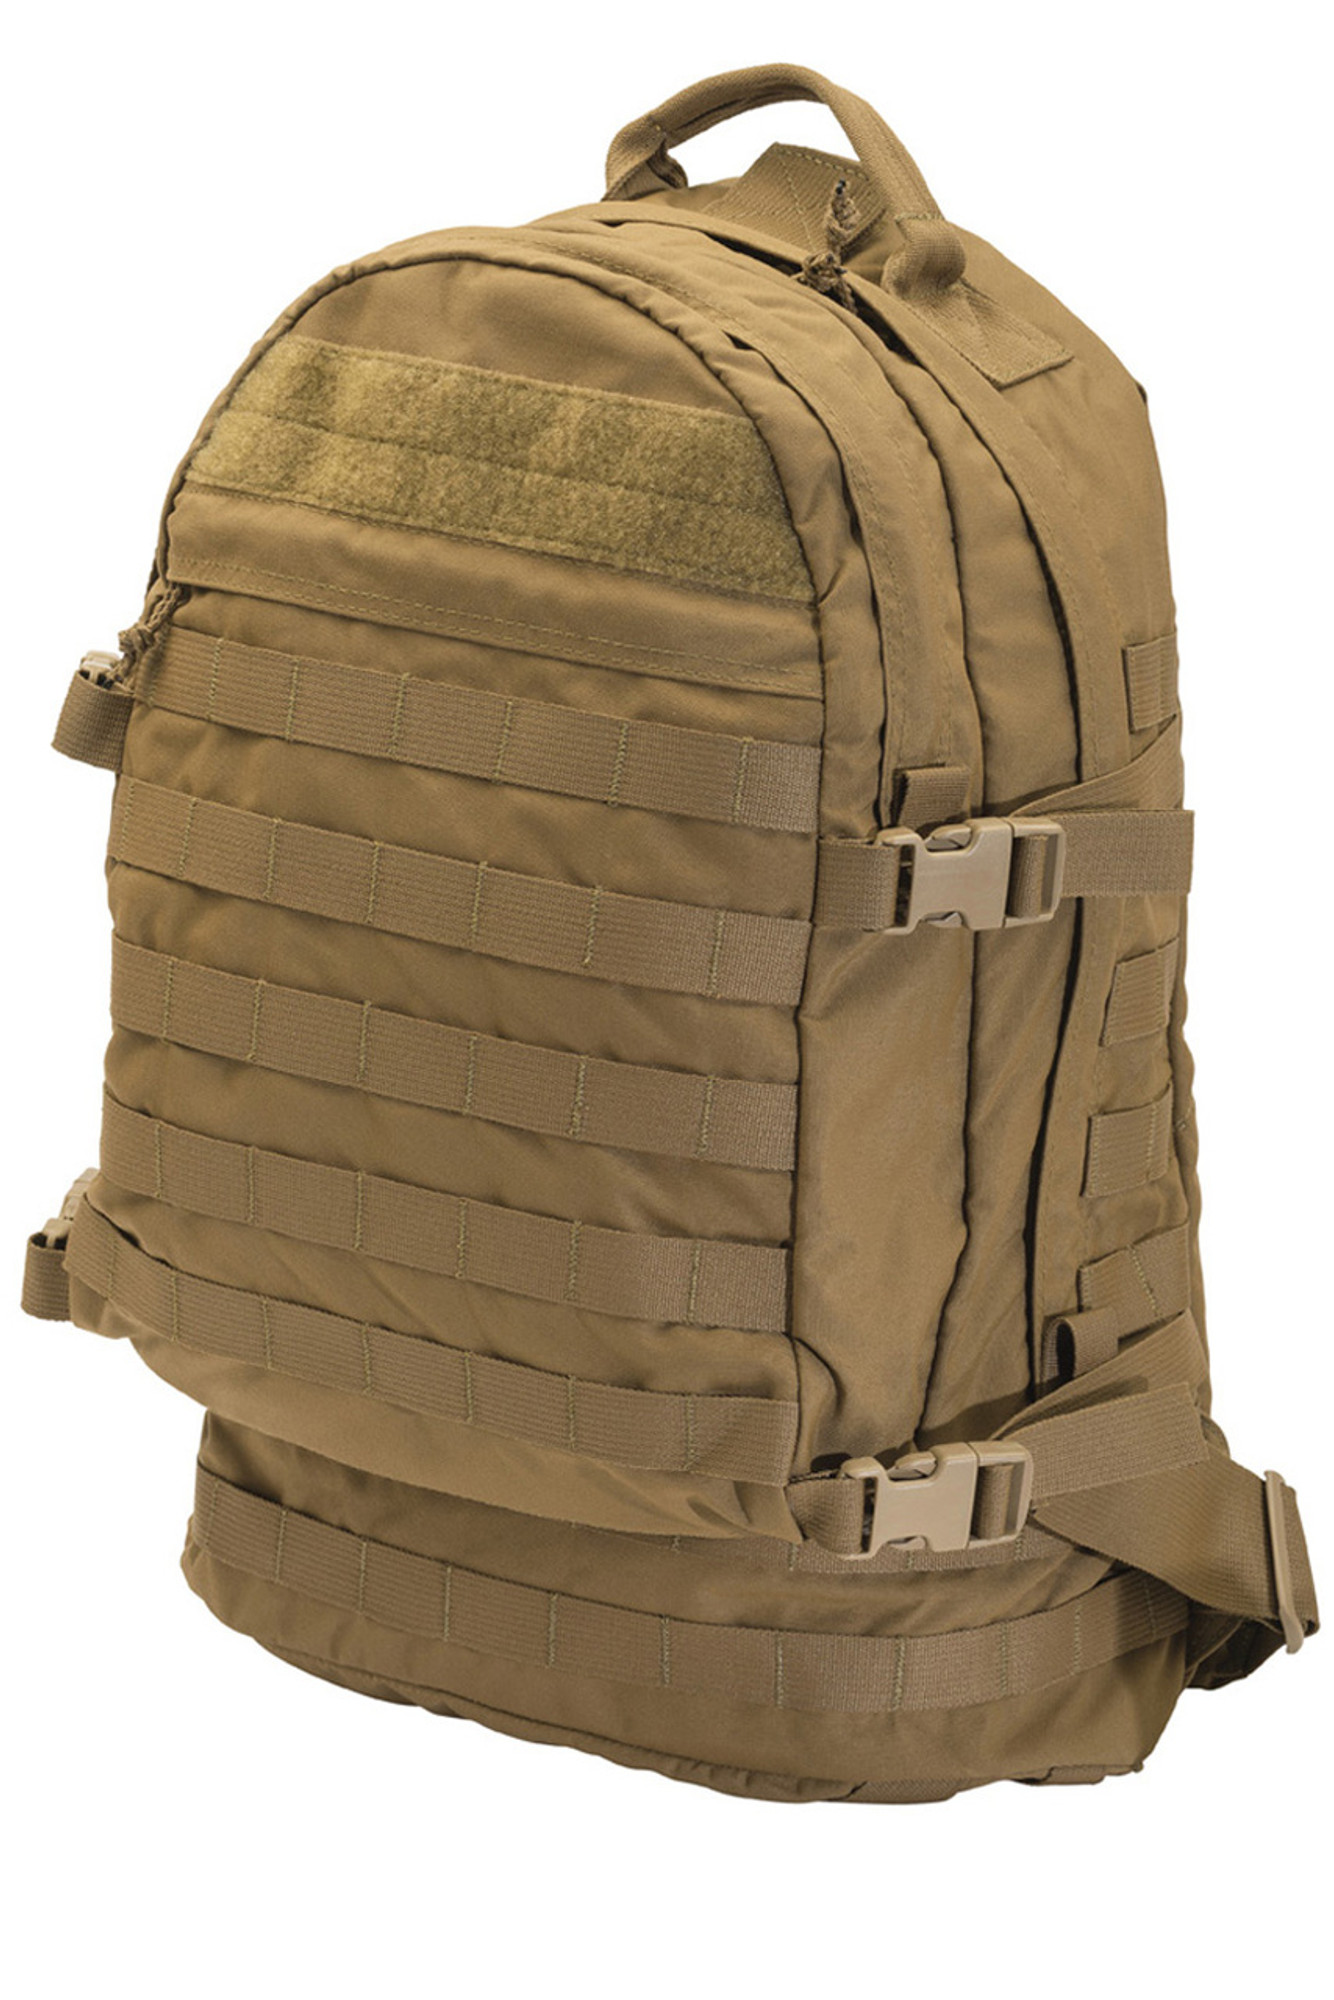 T3 3 Day Hydration Backpack - T3 Gear cf82544d2f79e